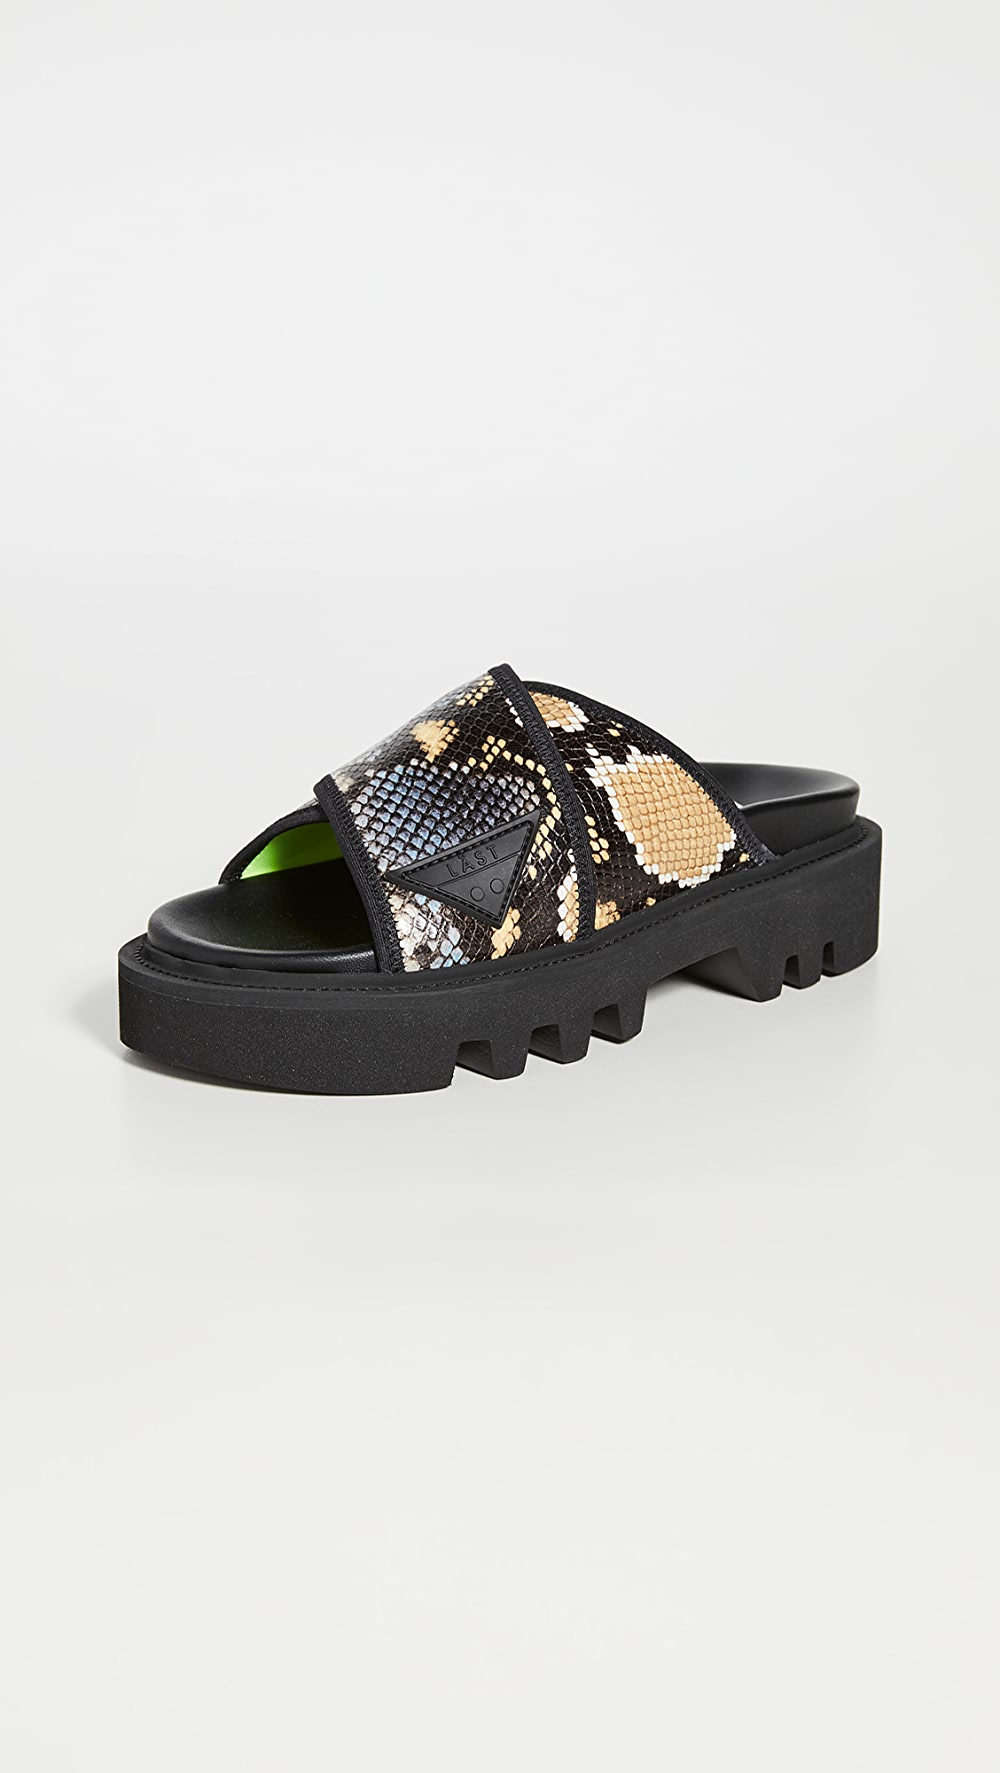 Capable Last - Prime Snake Sandals To Be Highly Praised And Appreciated By The Consuming Public